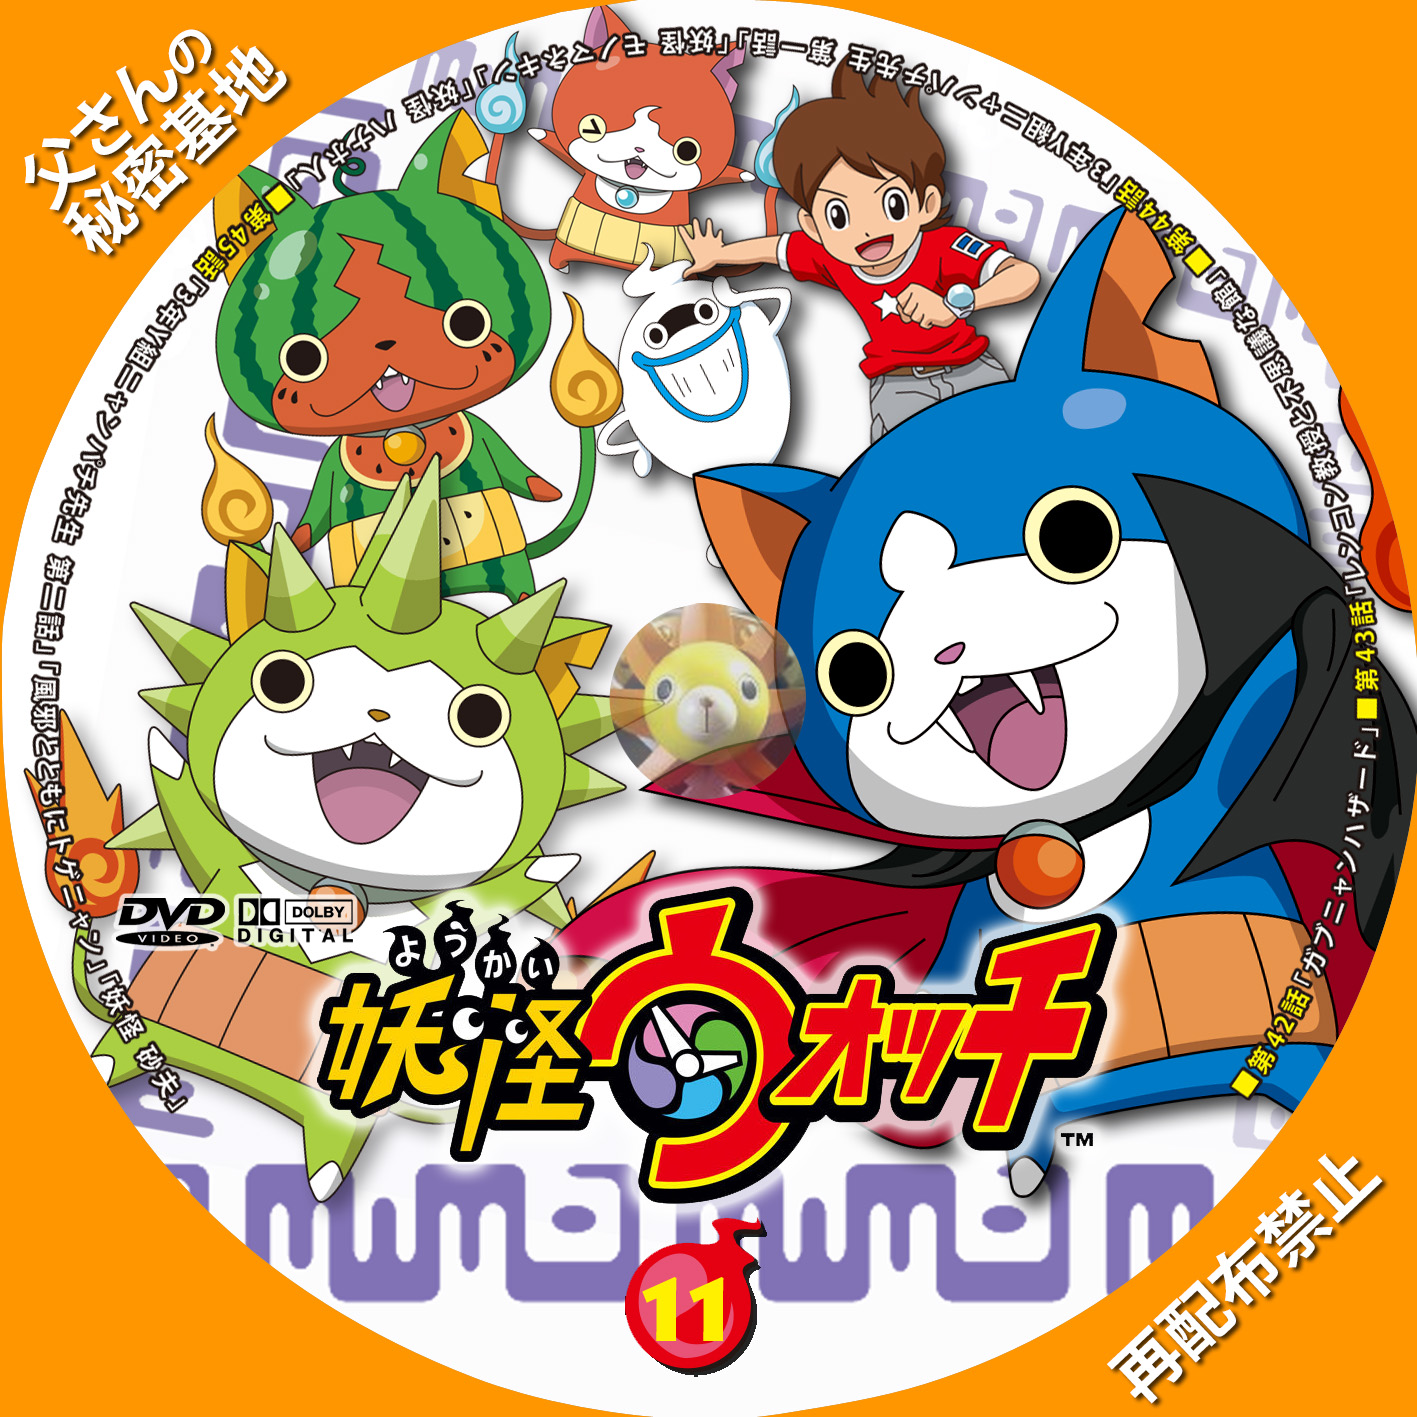 youkai-watch_11DVDa.jpg